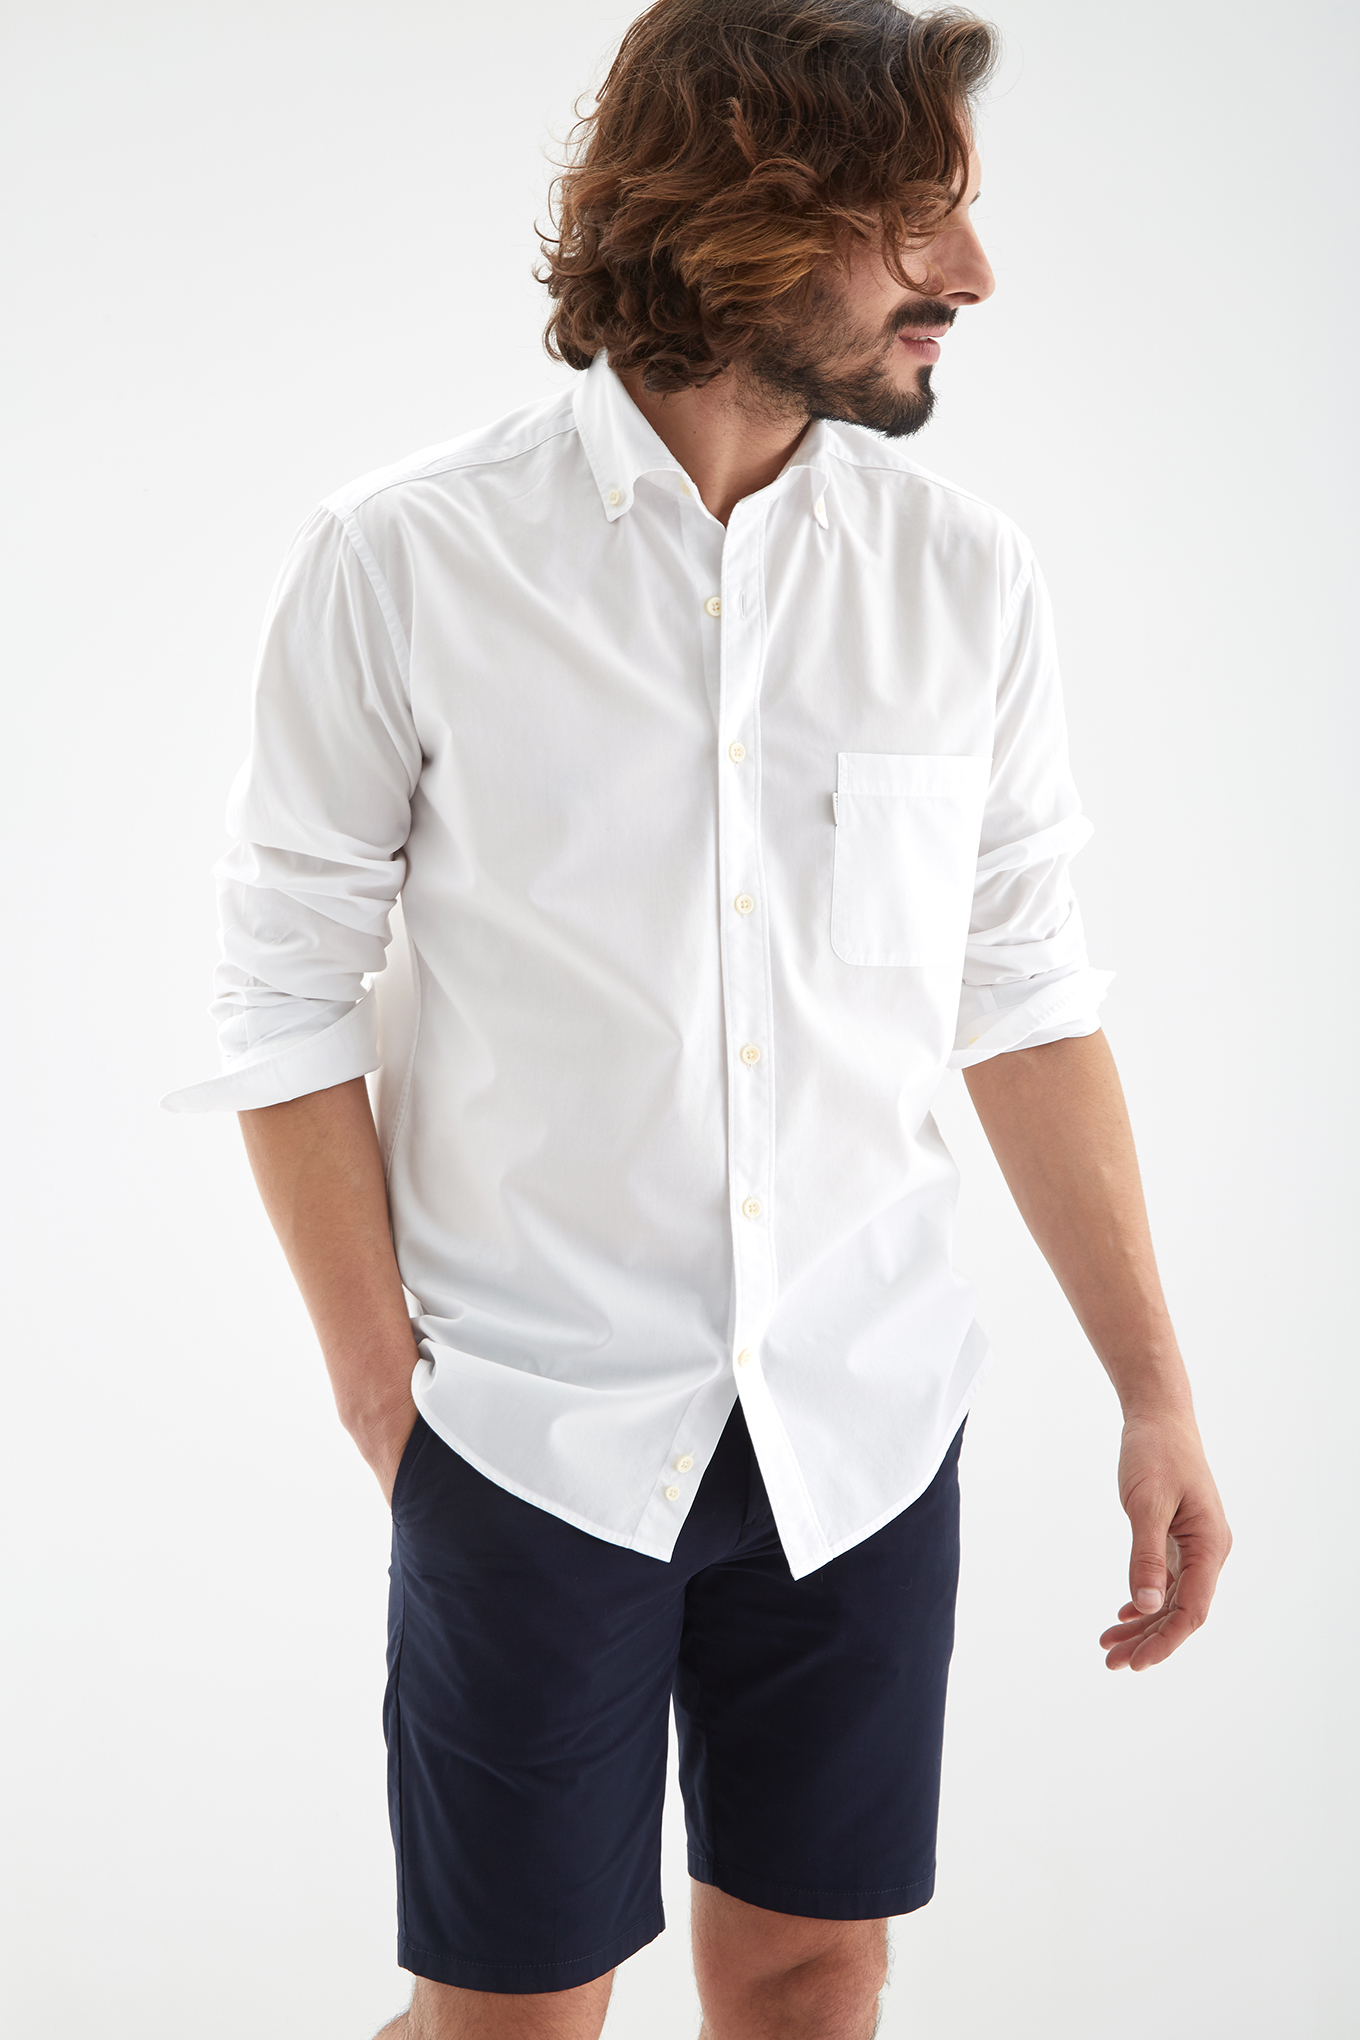 Shirt White Sport Man